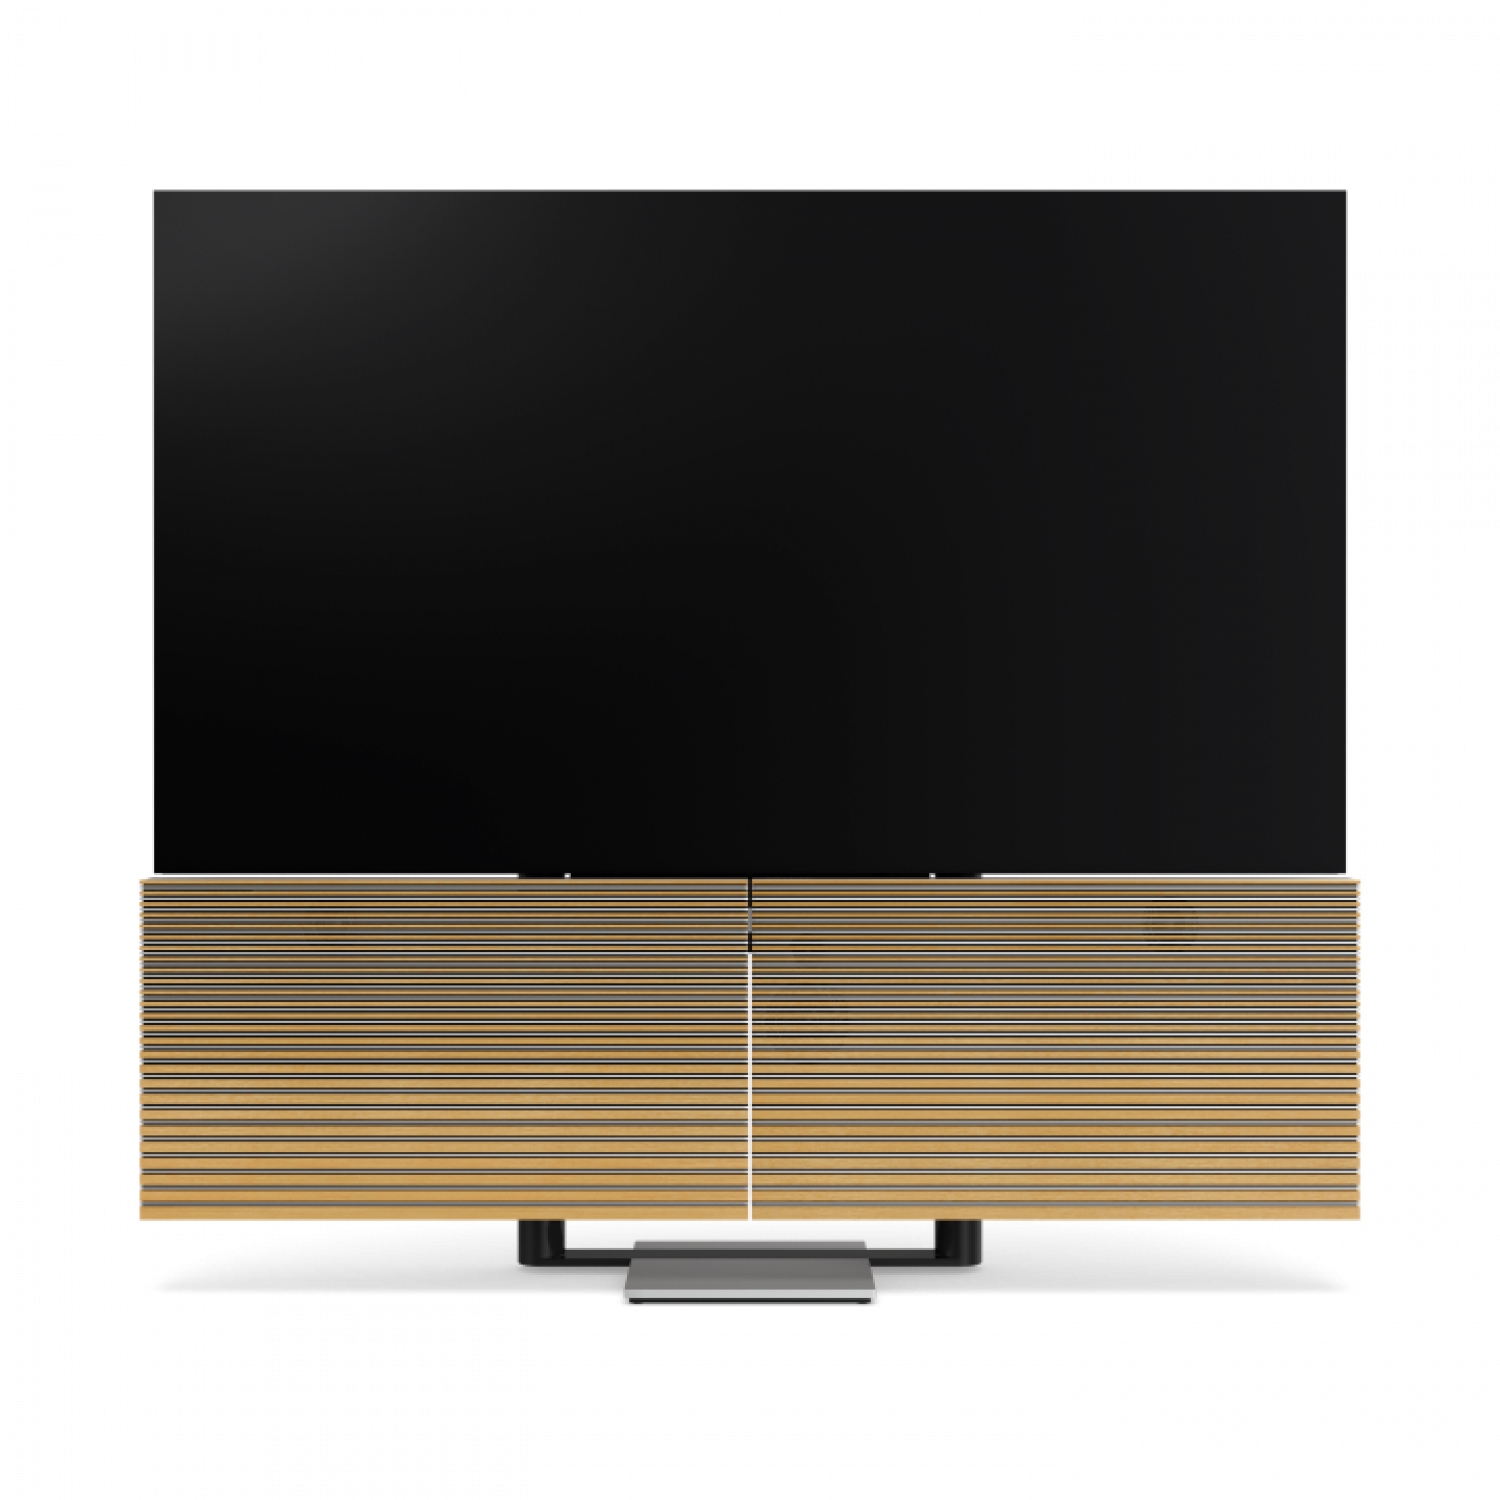 Bang & Olufsen Televisions; class=